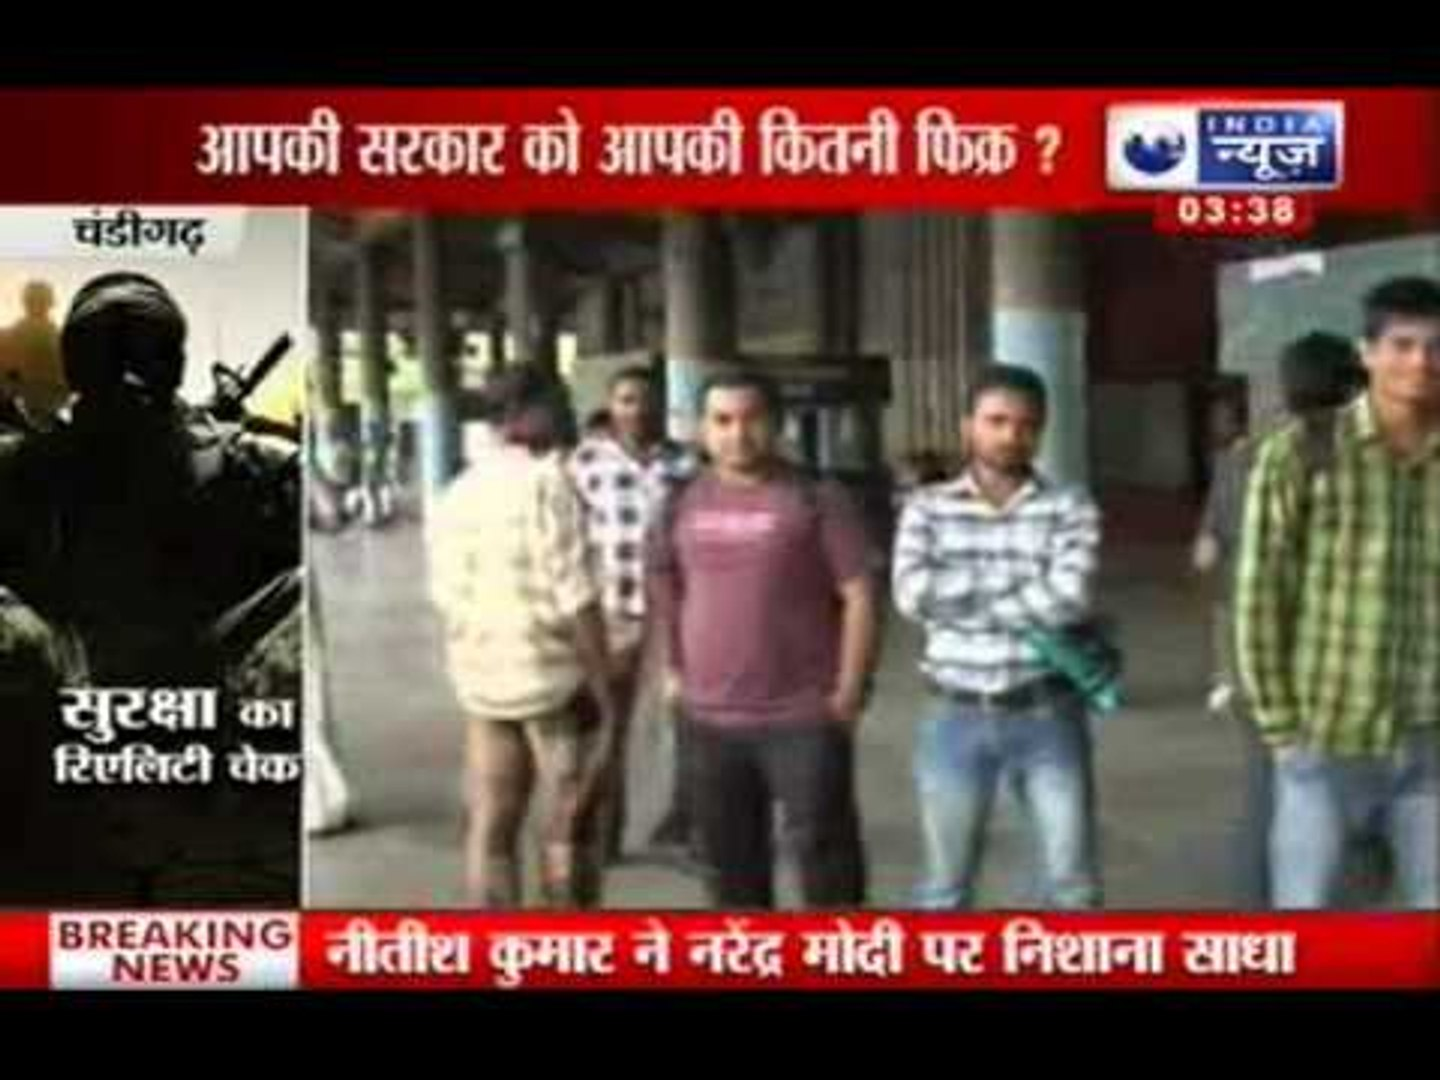 India News : Reality check of security in India